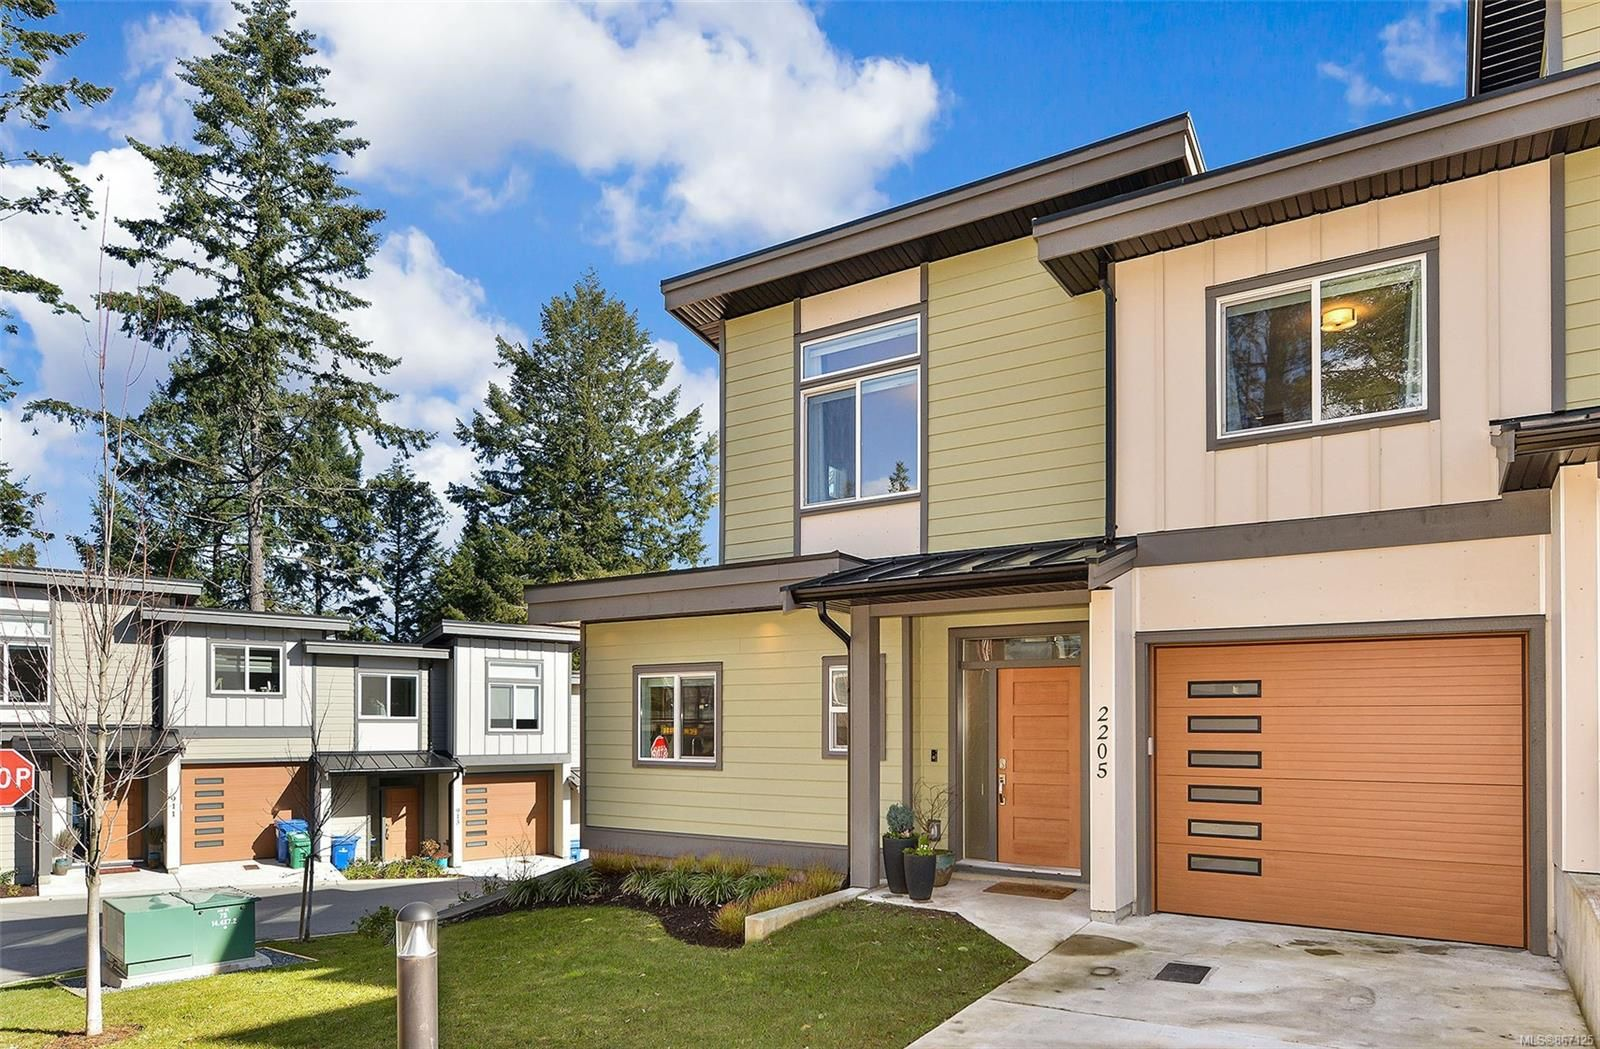 Main Photo: 2205 Echo Valley Rise in : La Bear Mountain Row/Townhouse for sale (Langford)  : MLS®# 867125